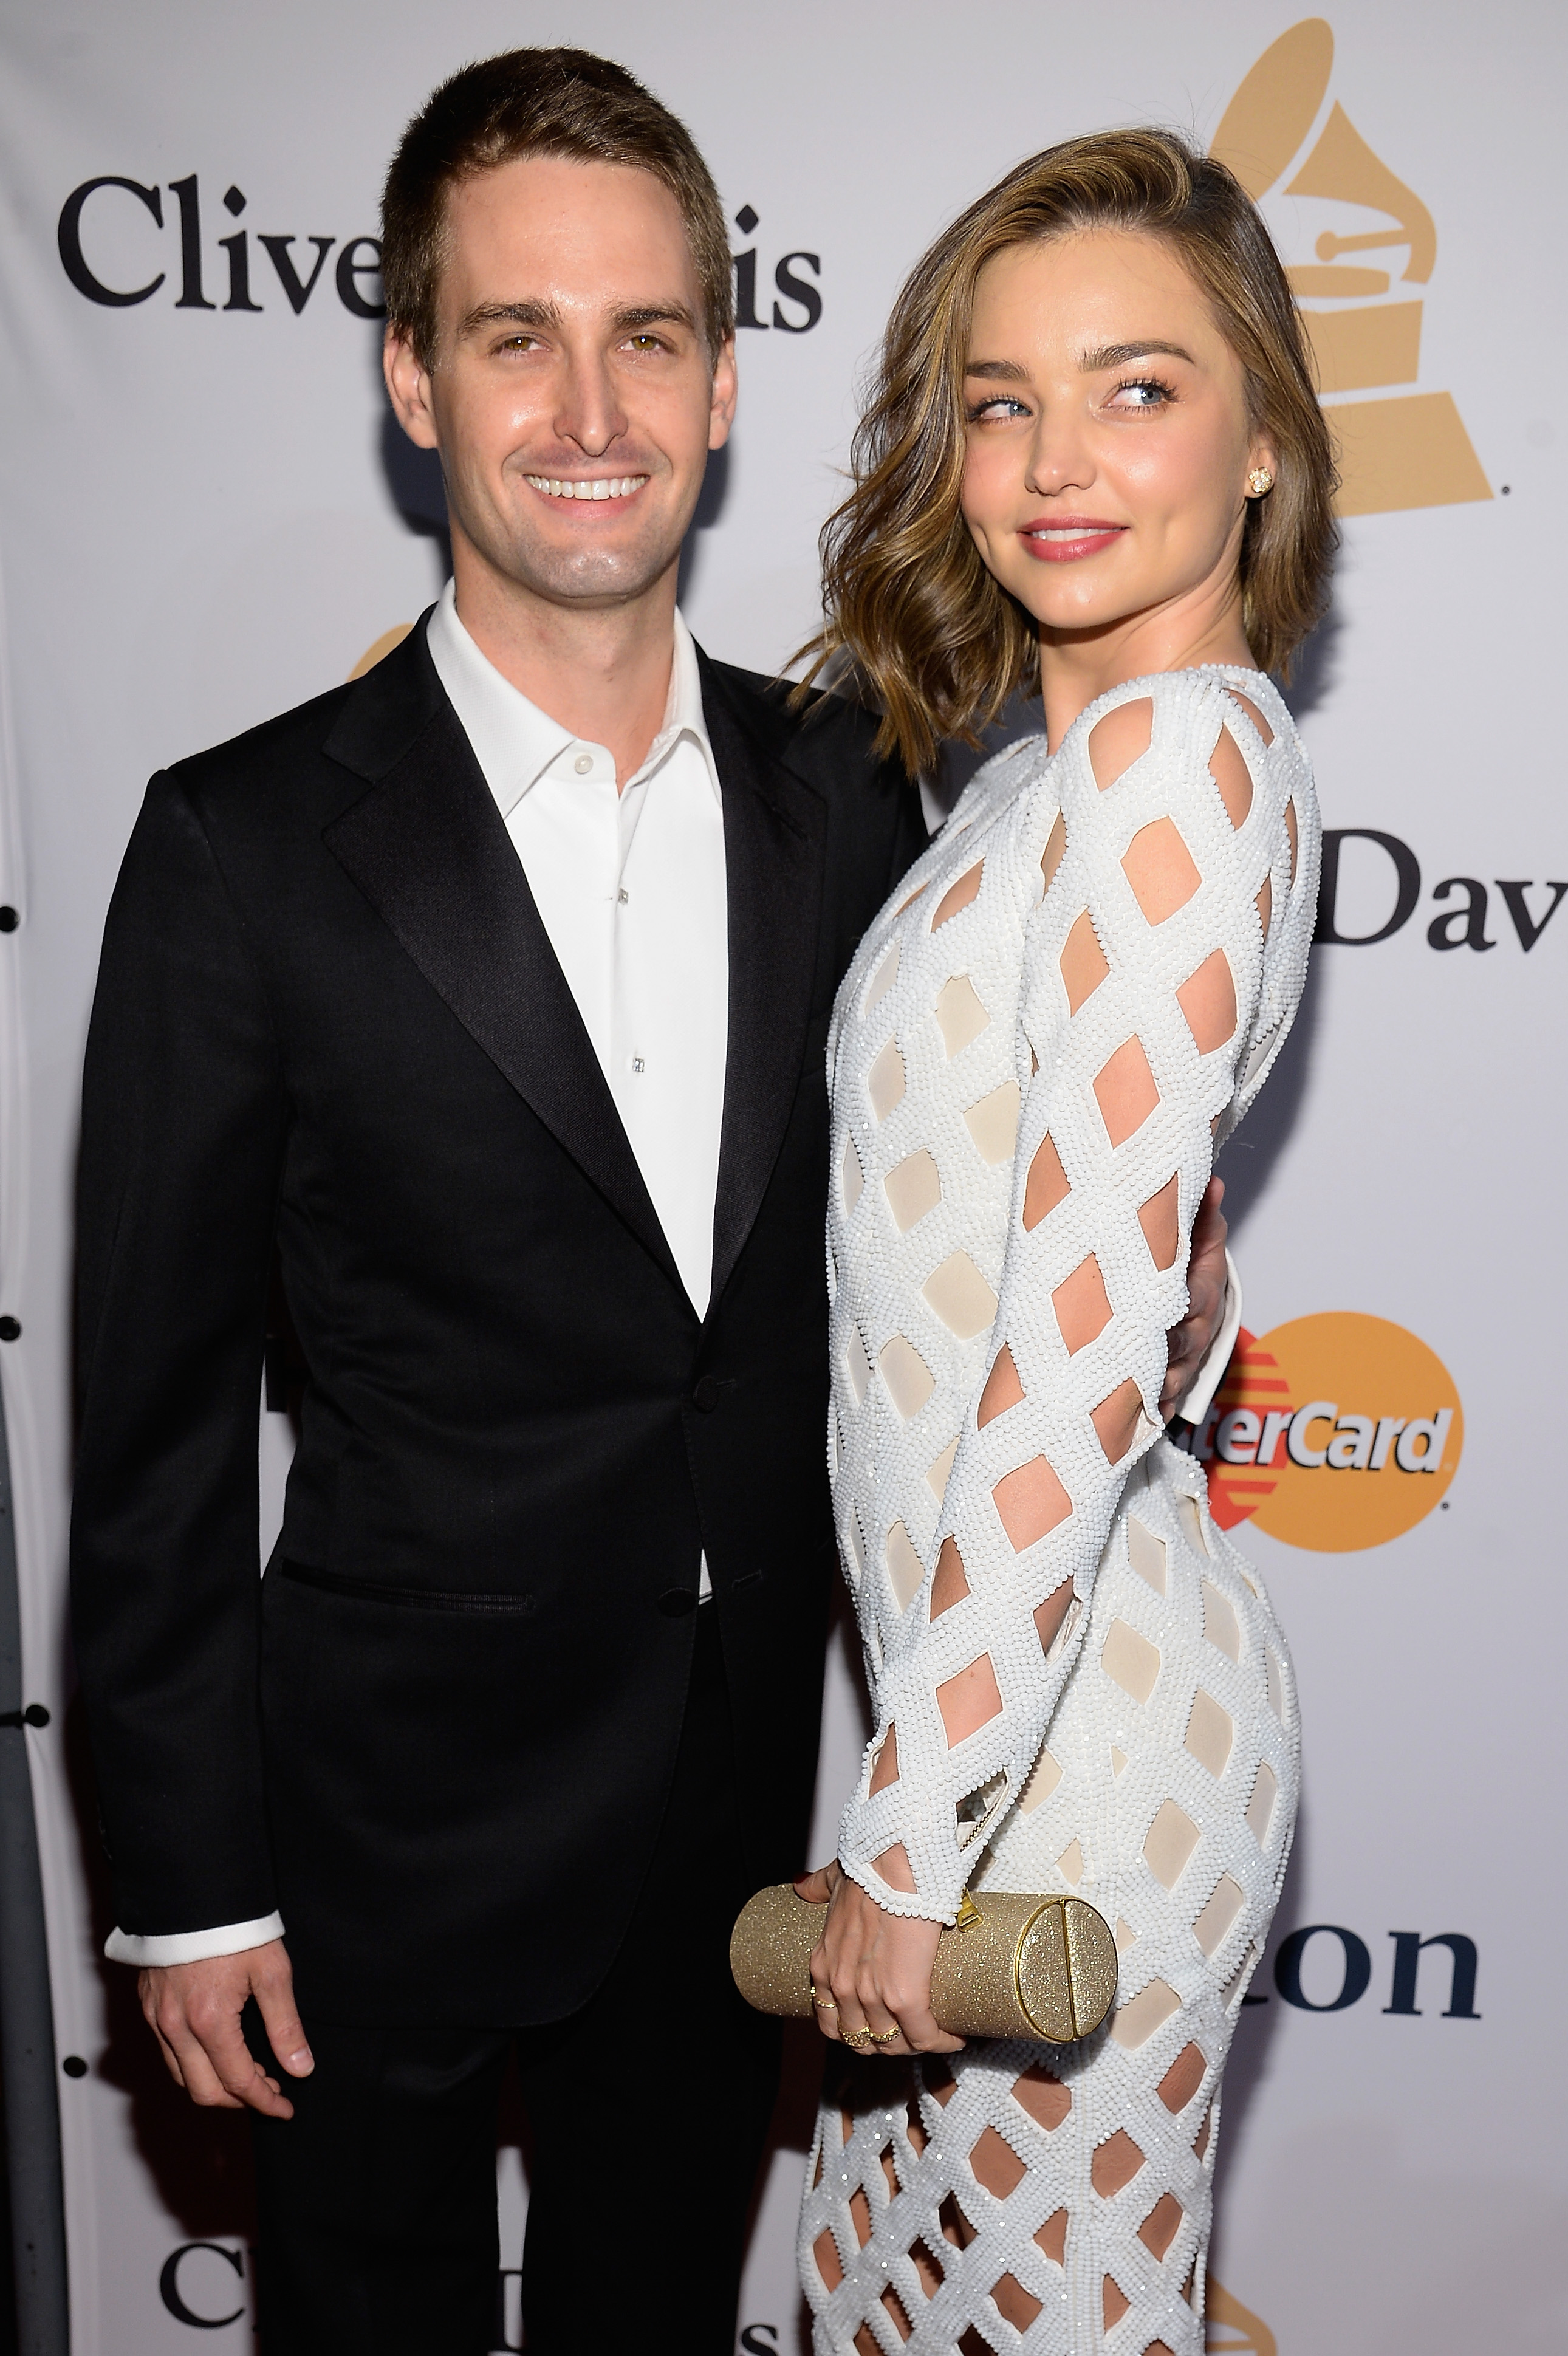 BEVERLY HILLS, CA - FEBRUARY 14:  Co-founder and CEO of Snapchat Evan Spiegel (L) and model Miranda Kerr attend the 2016 Pre-GRAMMY Gala and Salute to Industry Icons honoring Irving Azoff at The Beverly Hilton Hotel on February 14, 2016 in Beverly Hills, California.  (Photo by Kevork Djansezian/Getty Images)